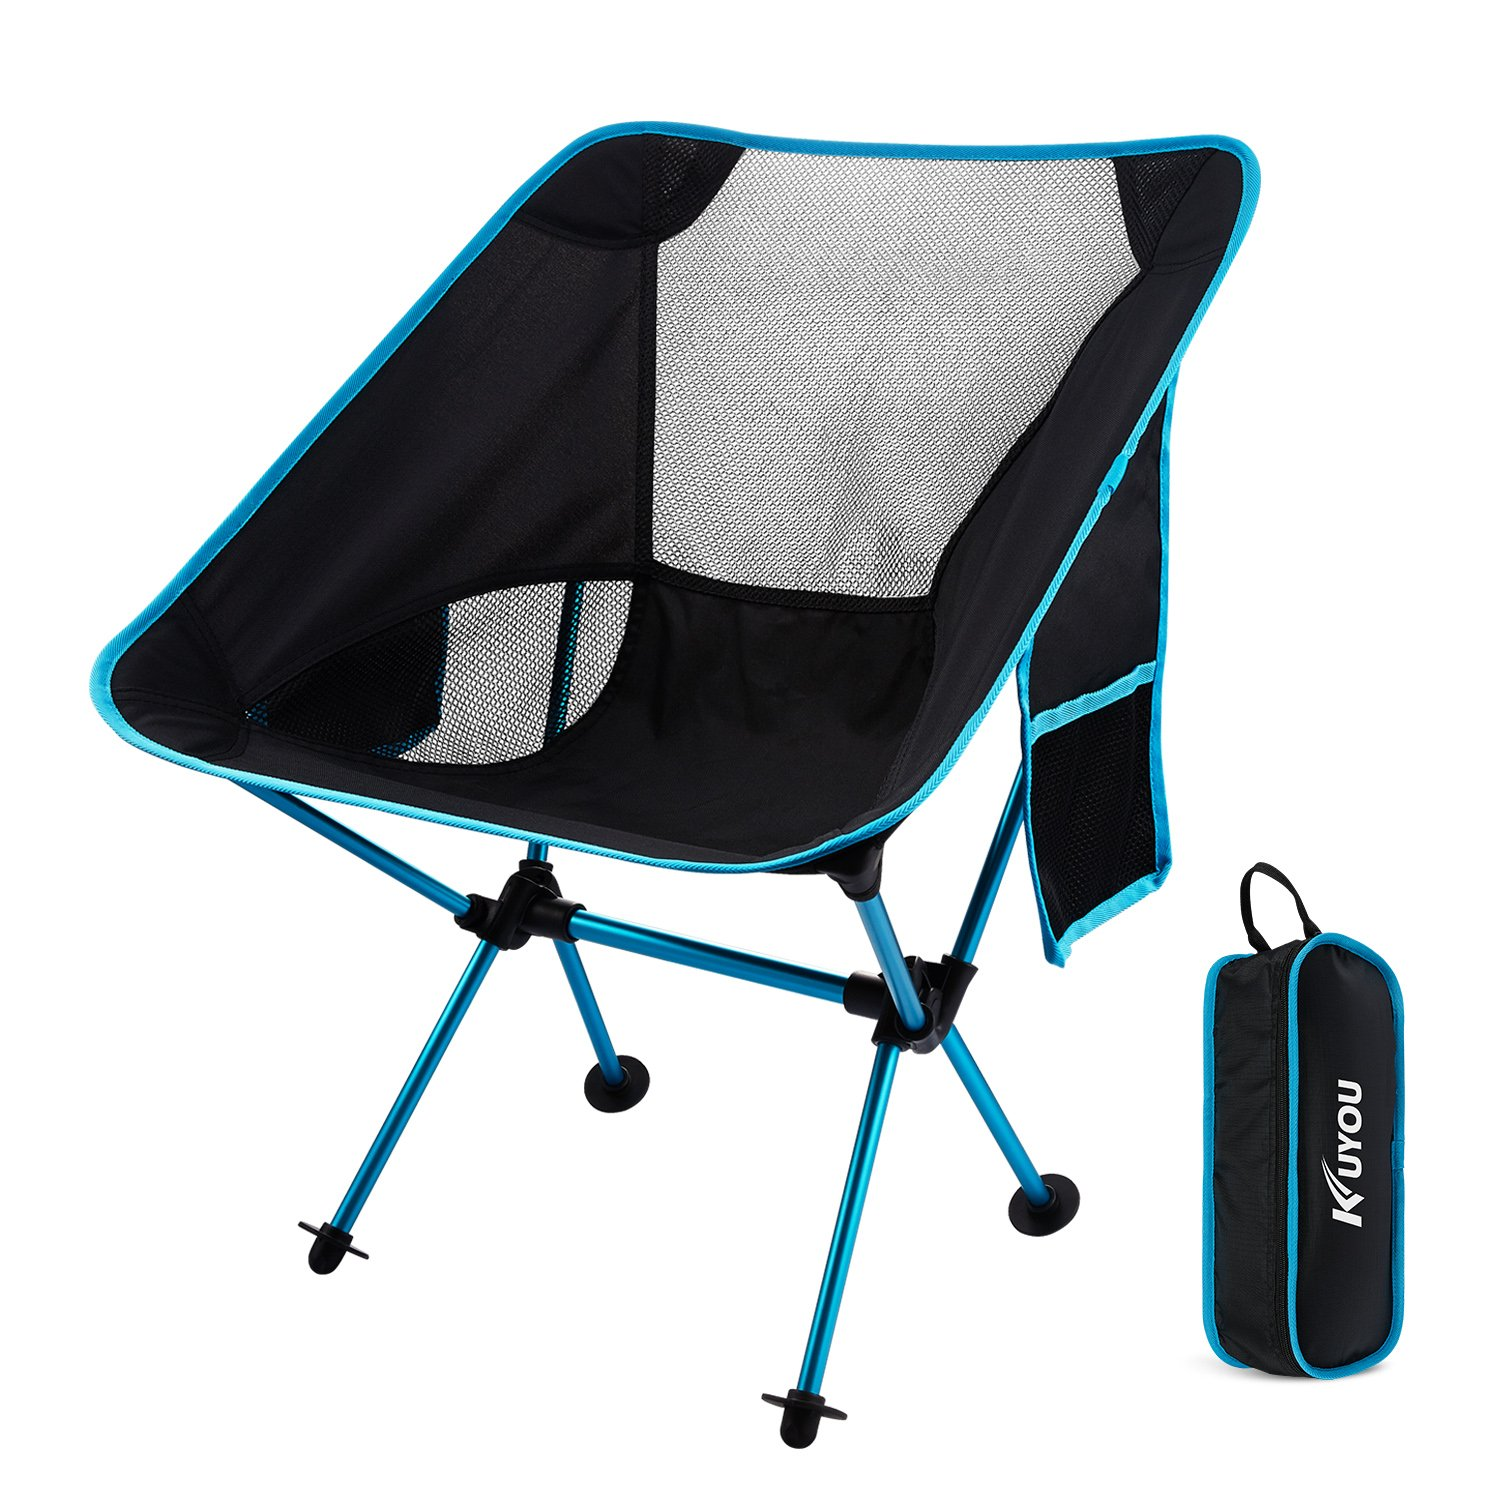 KUYOU Outdoor Fold Up Chairs, Beach Chairs Ultralight Portable Camping Chairs with Carry Bag for Hiker/Camping/Beach/Fishing/Outdoor Picnic